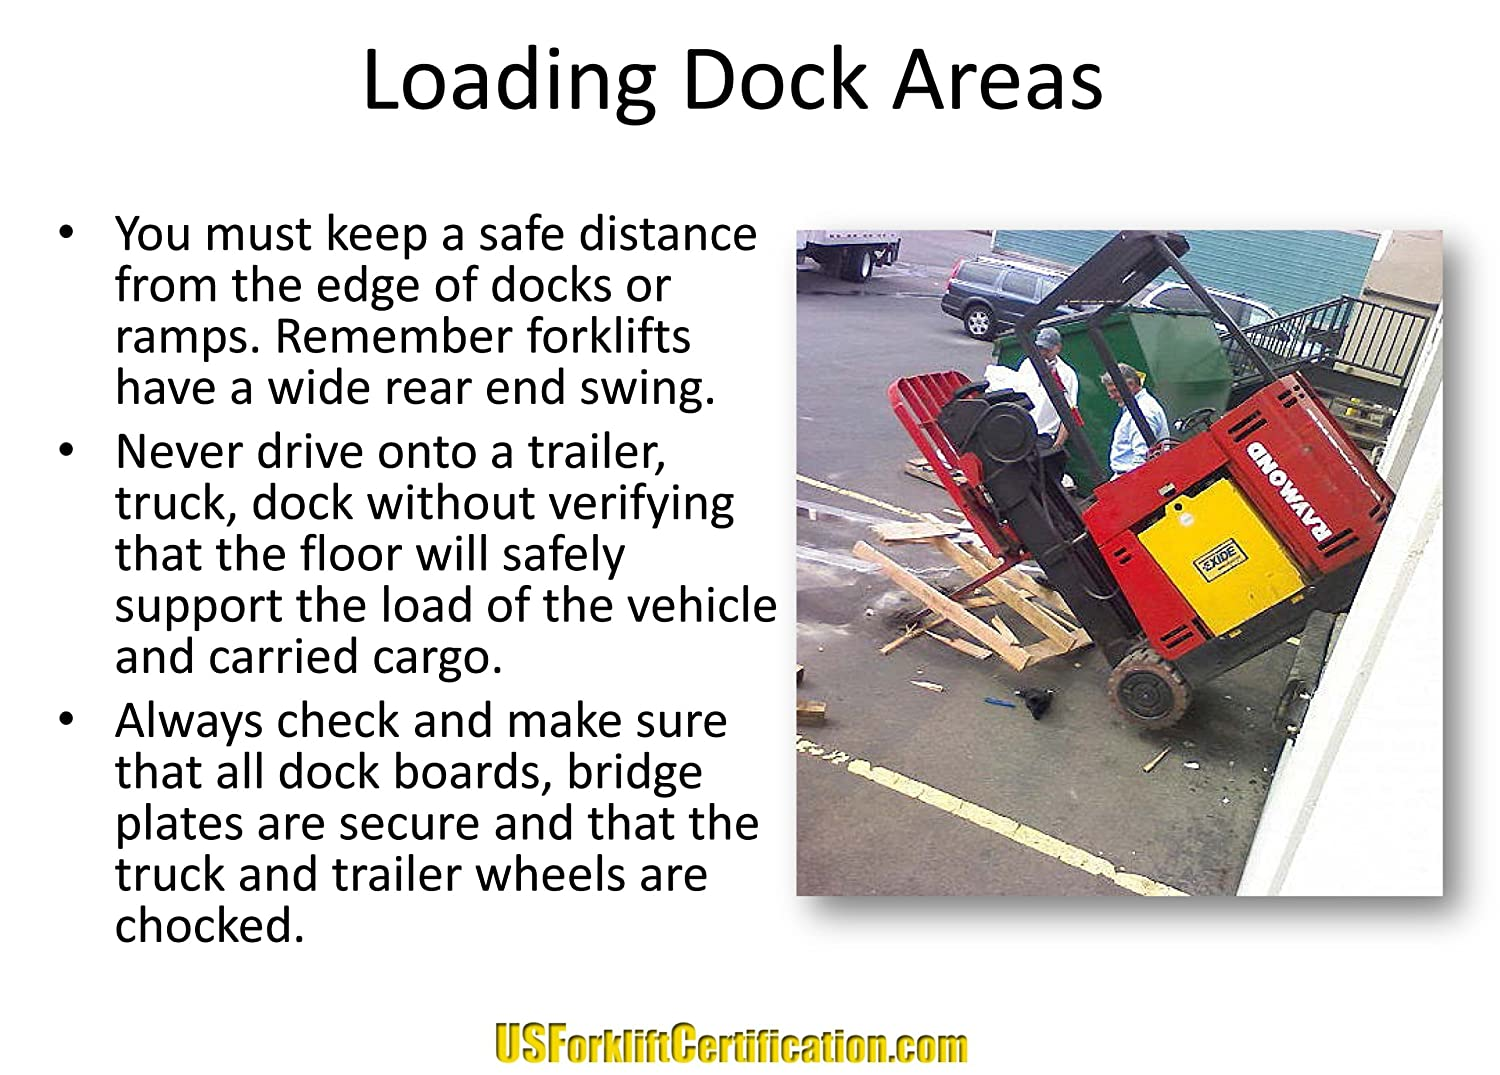 Amazon 1 forklift certification kit everything you need to amazon 1 forklift certification kit everything you need to certify an unlimited number of operators get the train the trainer course free a 95 1betcityfo Gallery